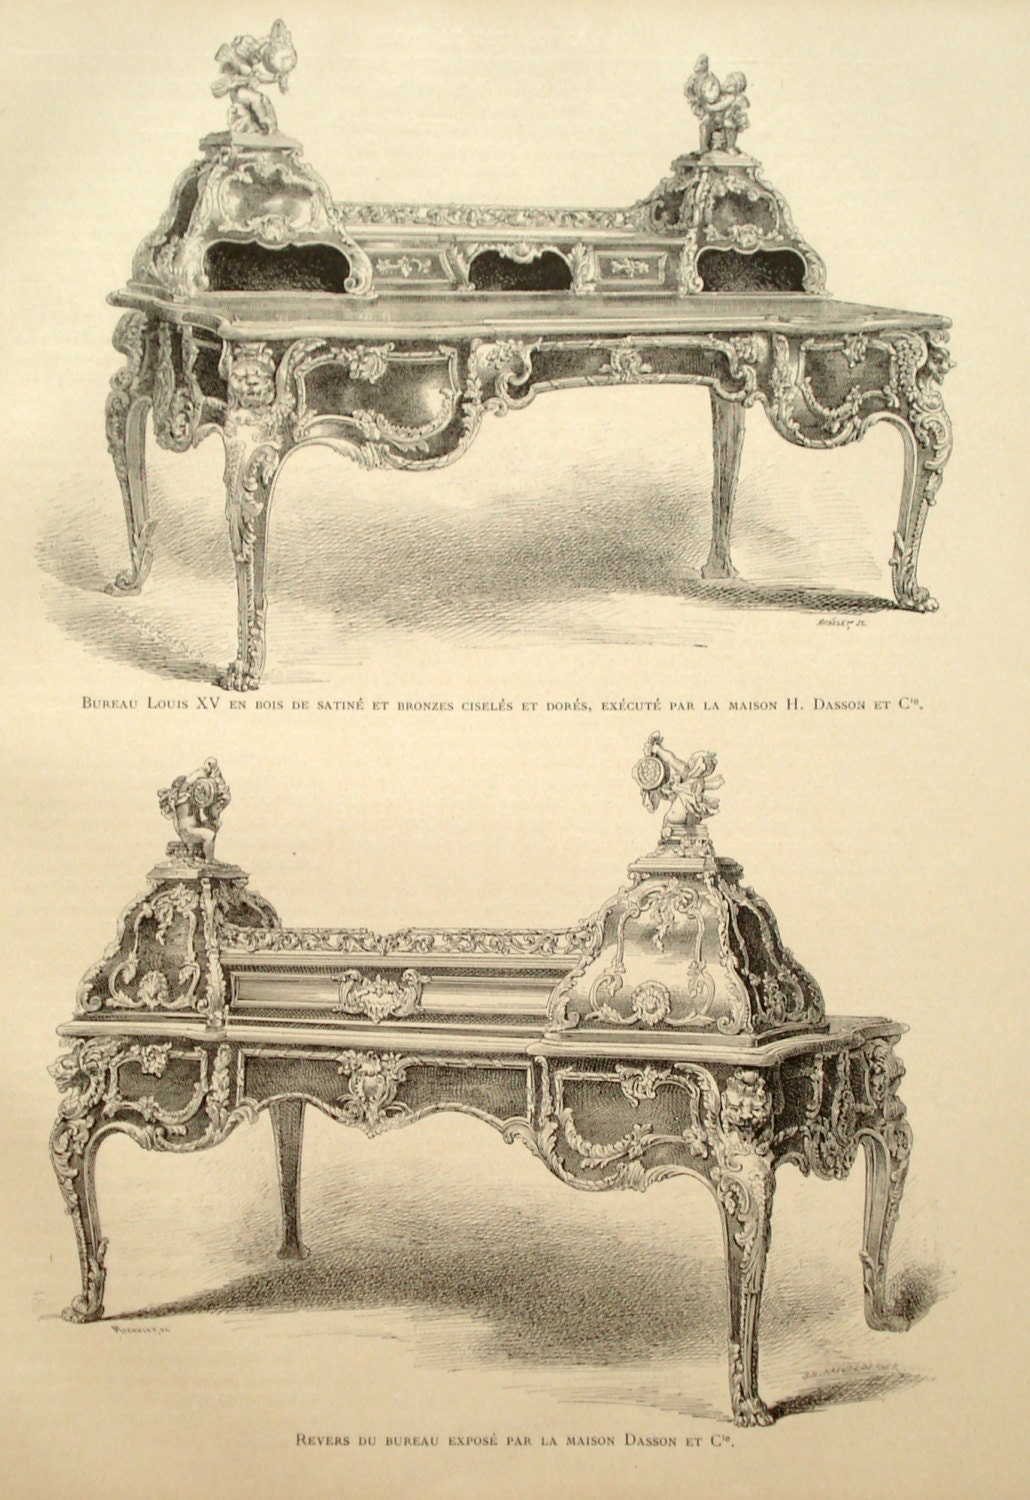 louis xv desk 1889 interior design print paris world fair expo furniture art 126 years. Black Bedroom Furniture Sets. Home Design Ideas